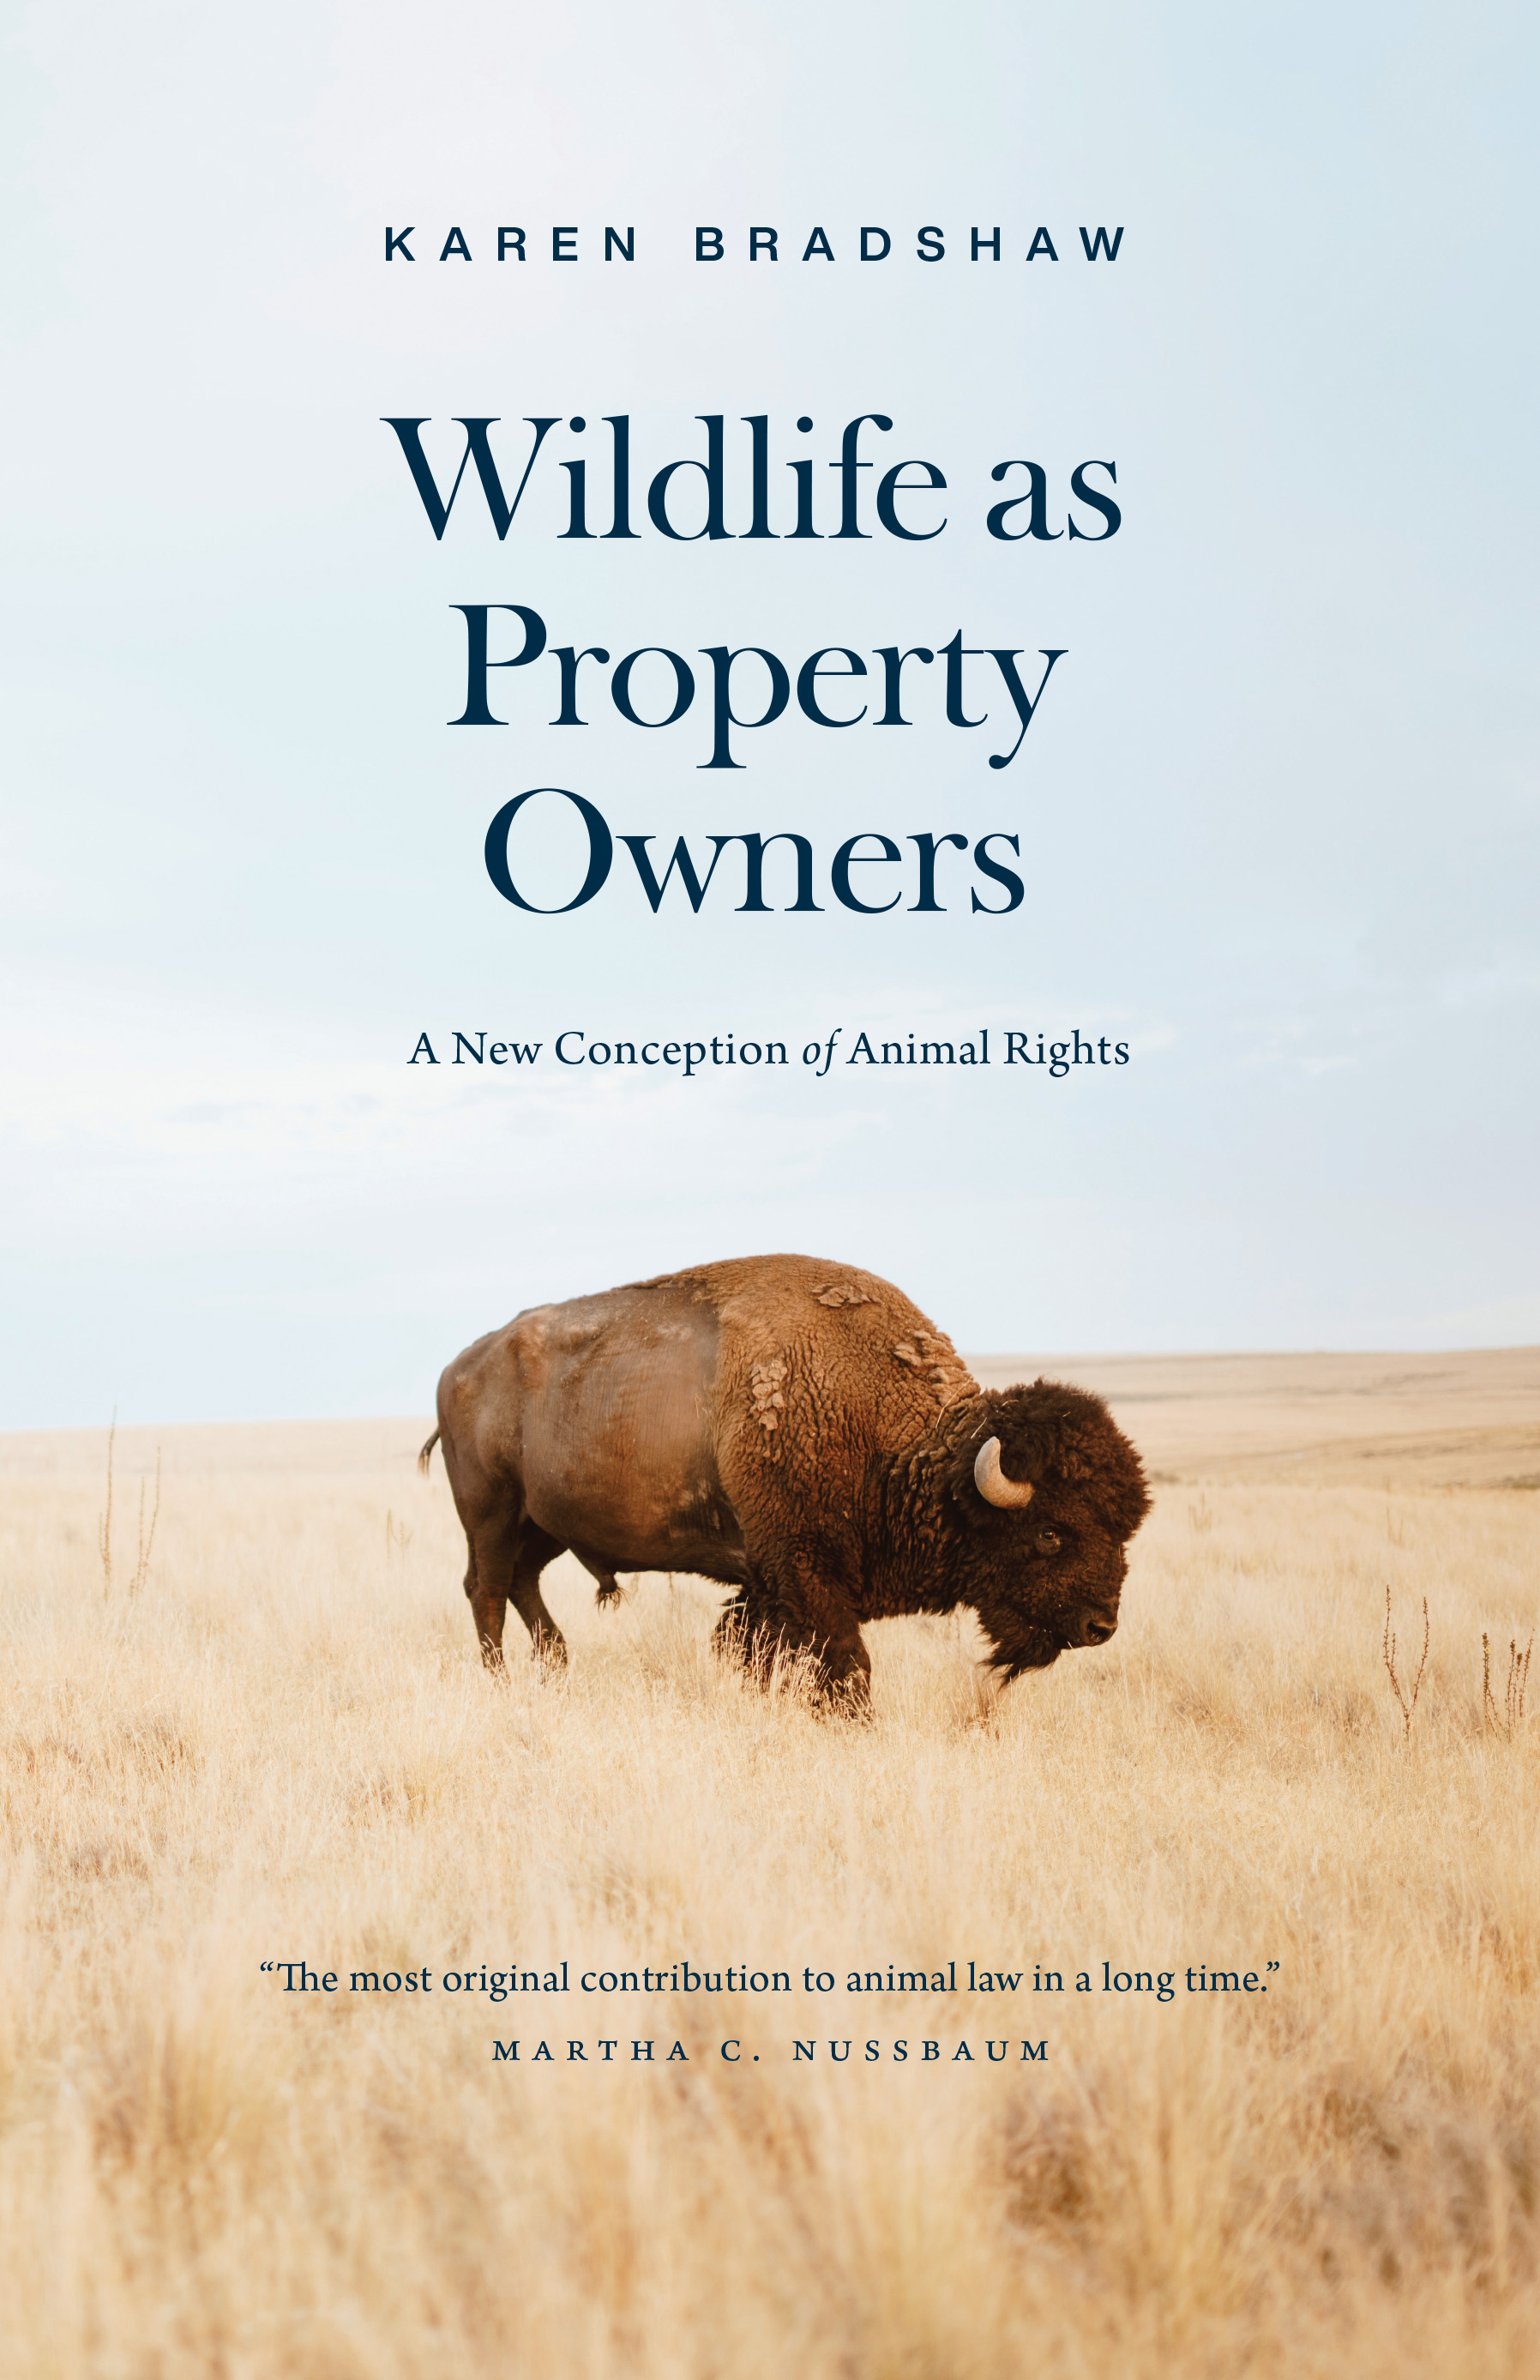 Wildlife as Property Owners: A New Conception of Animal Rights